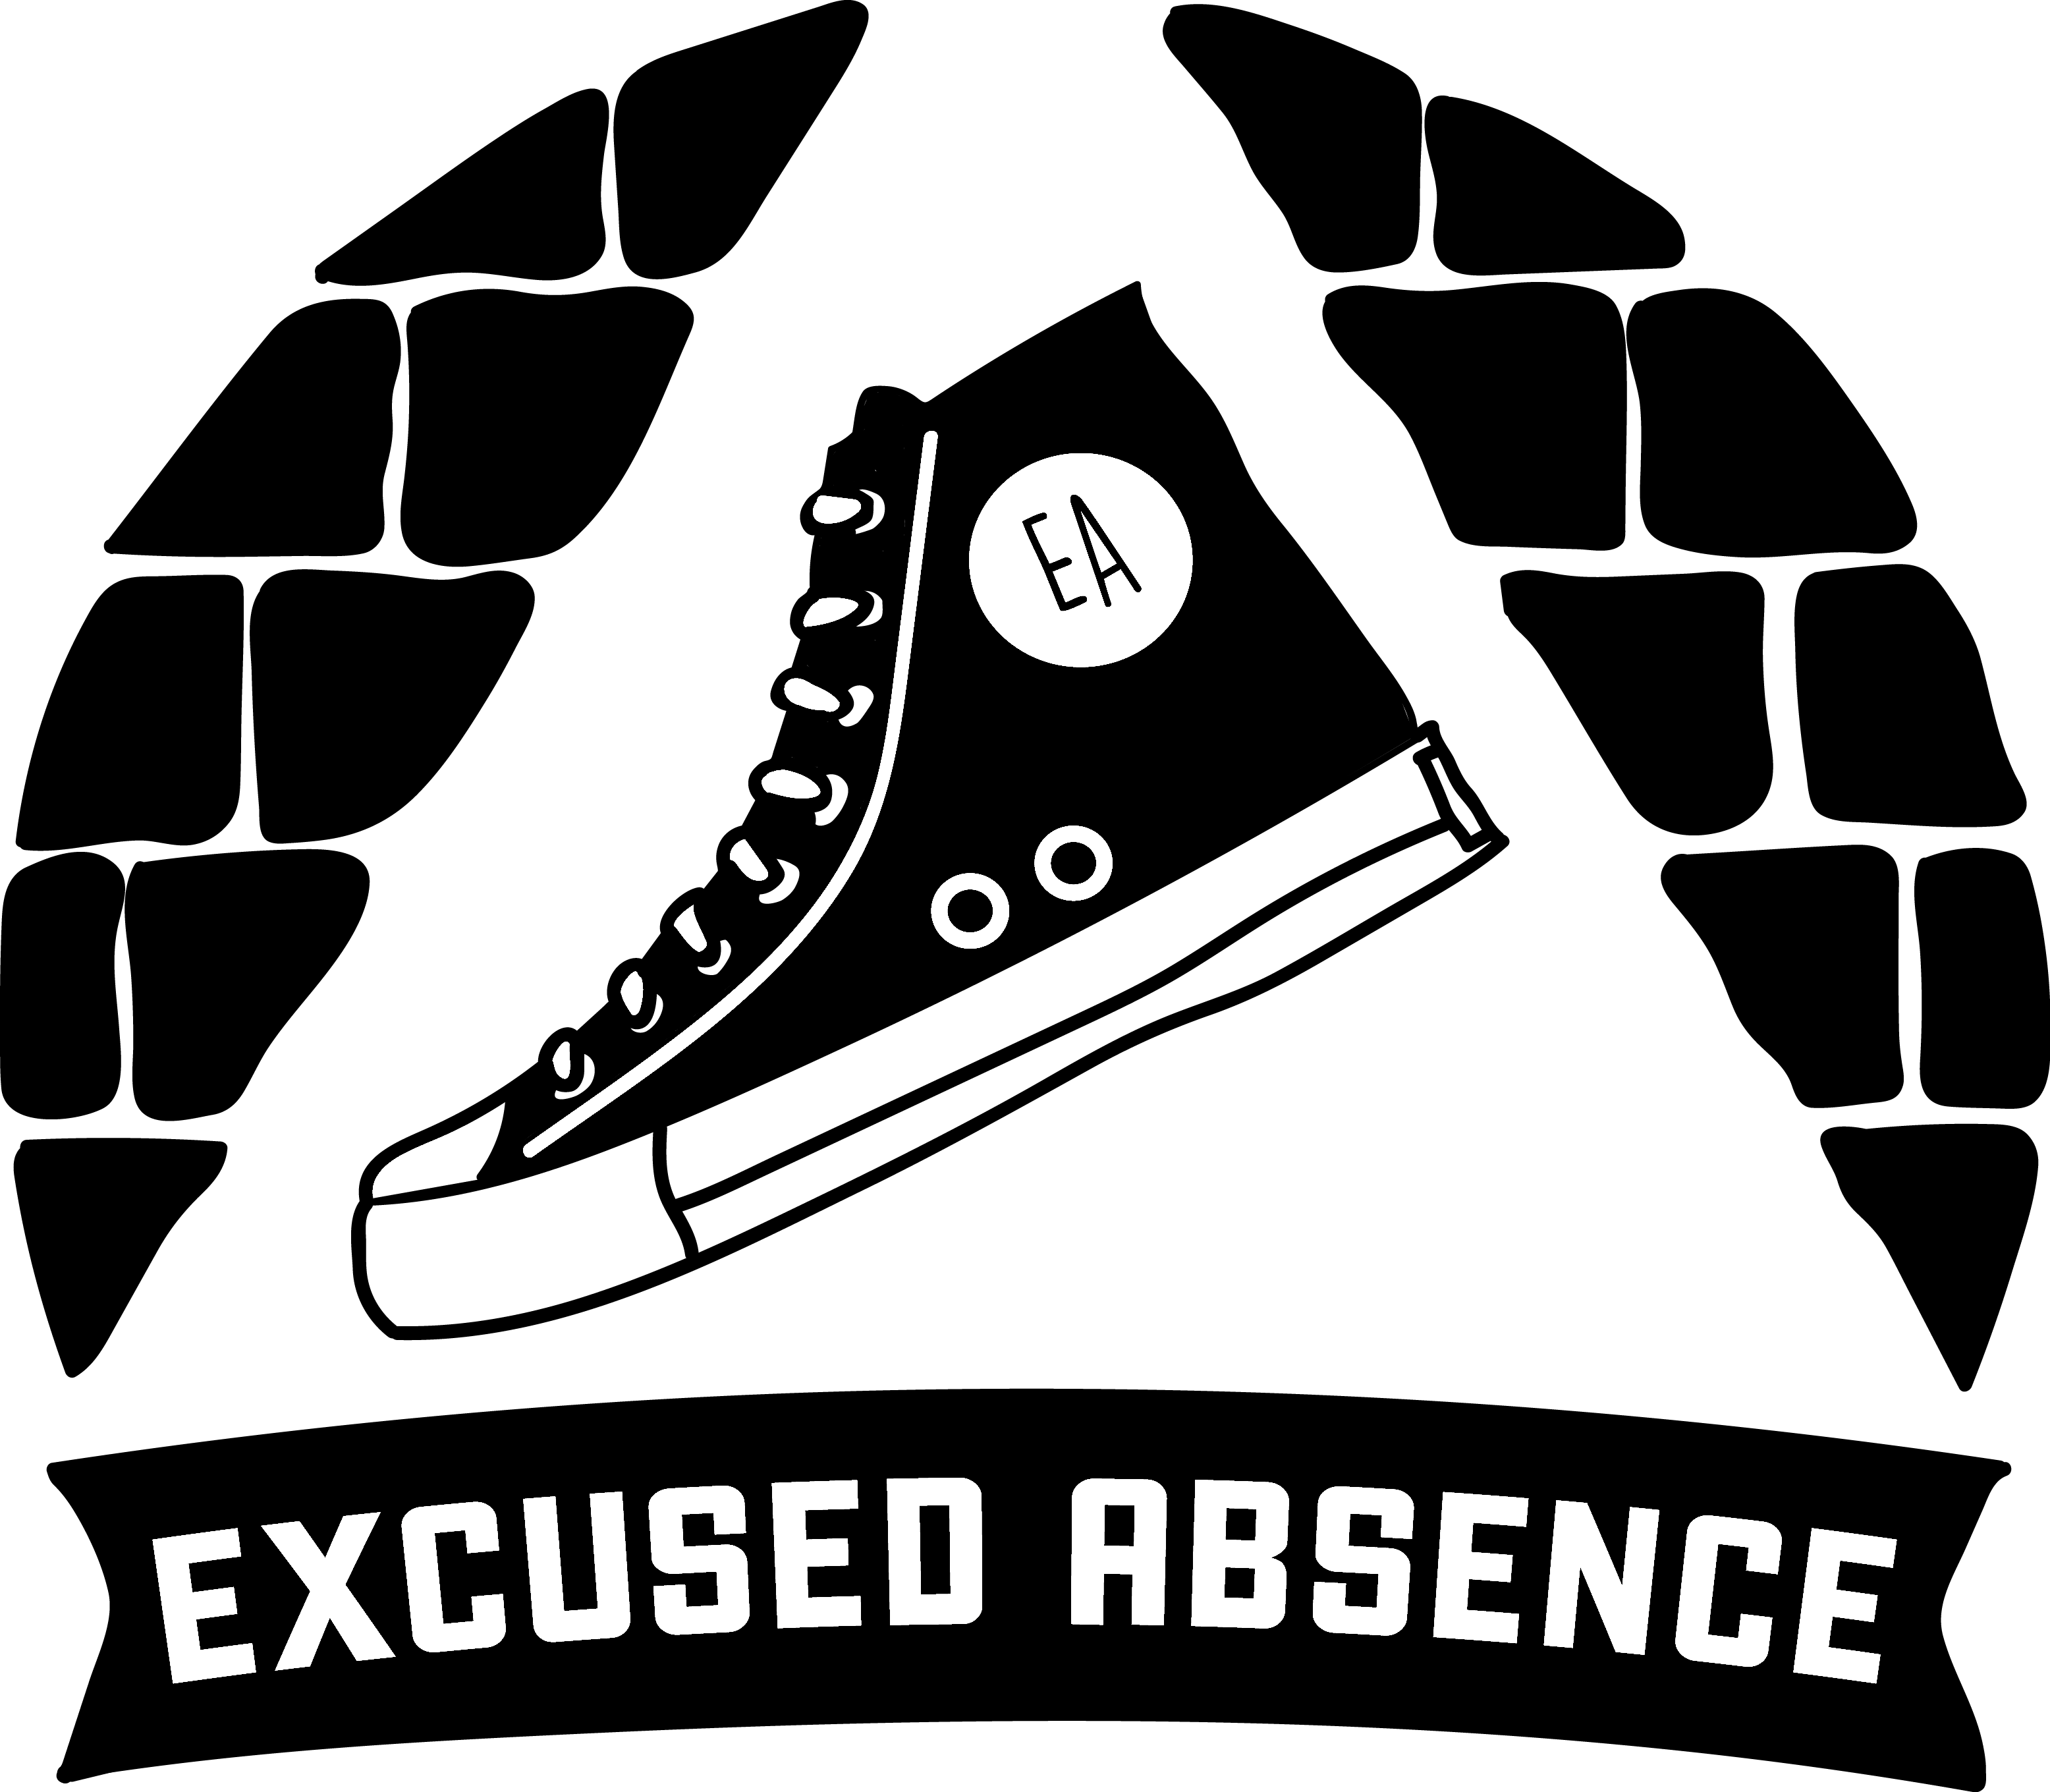 Excused Absence Comedy